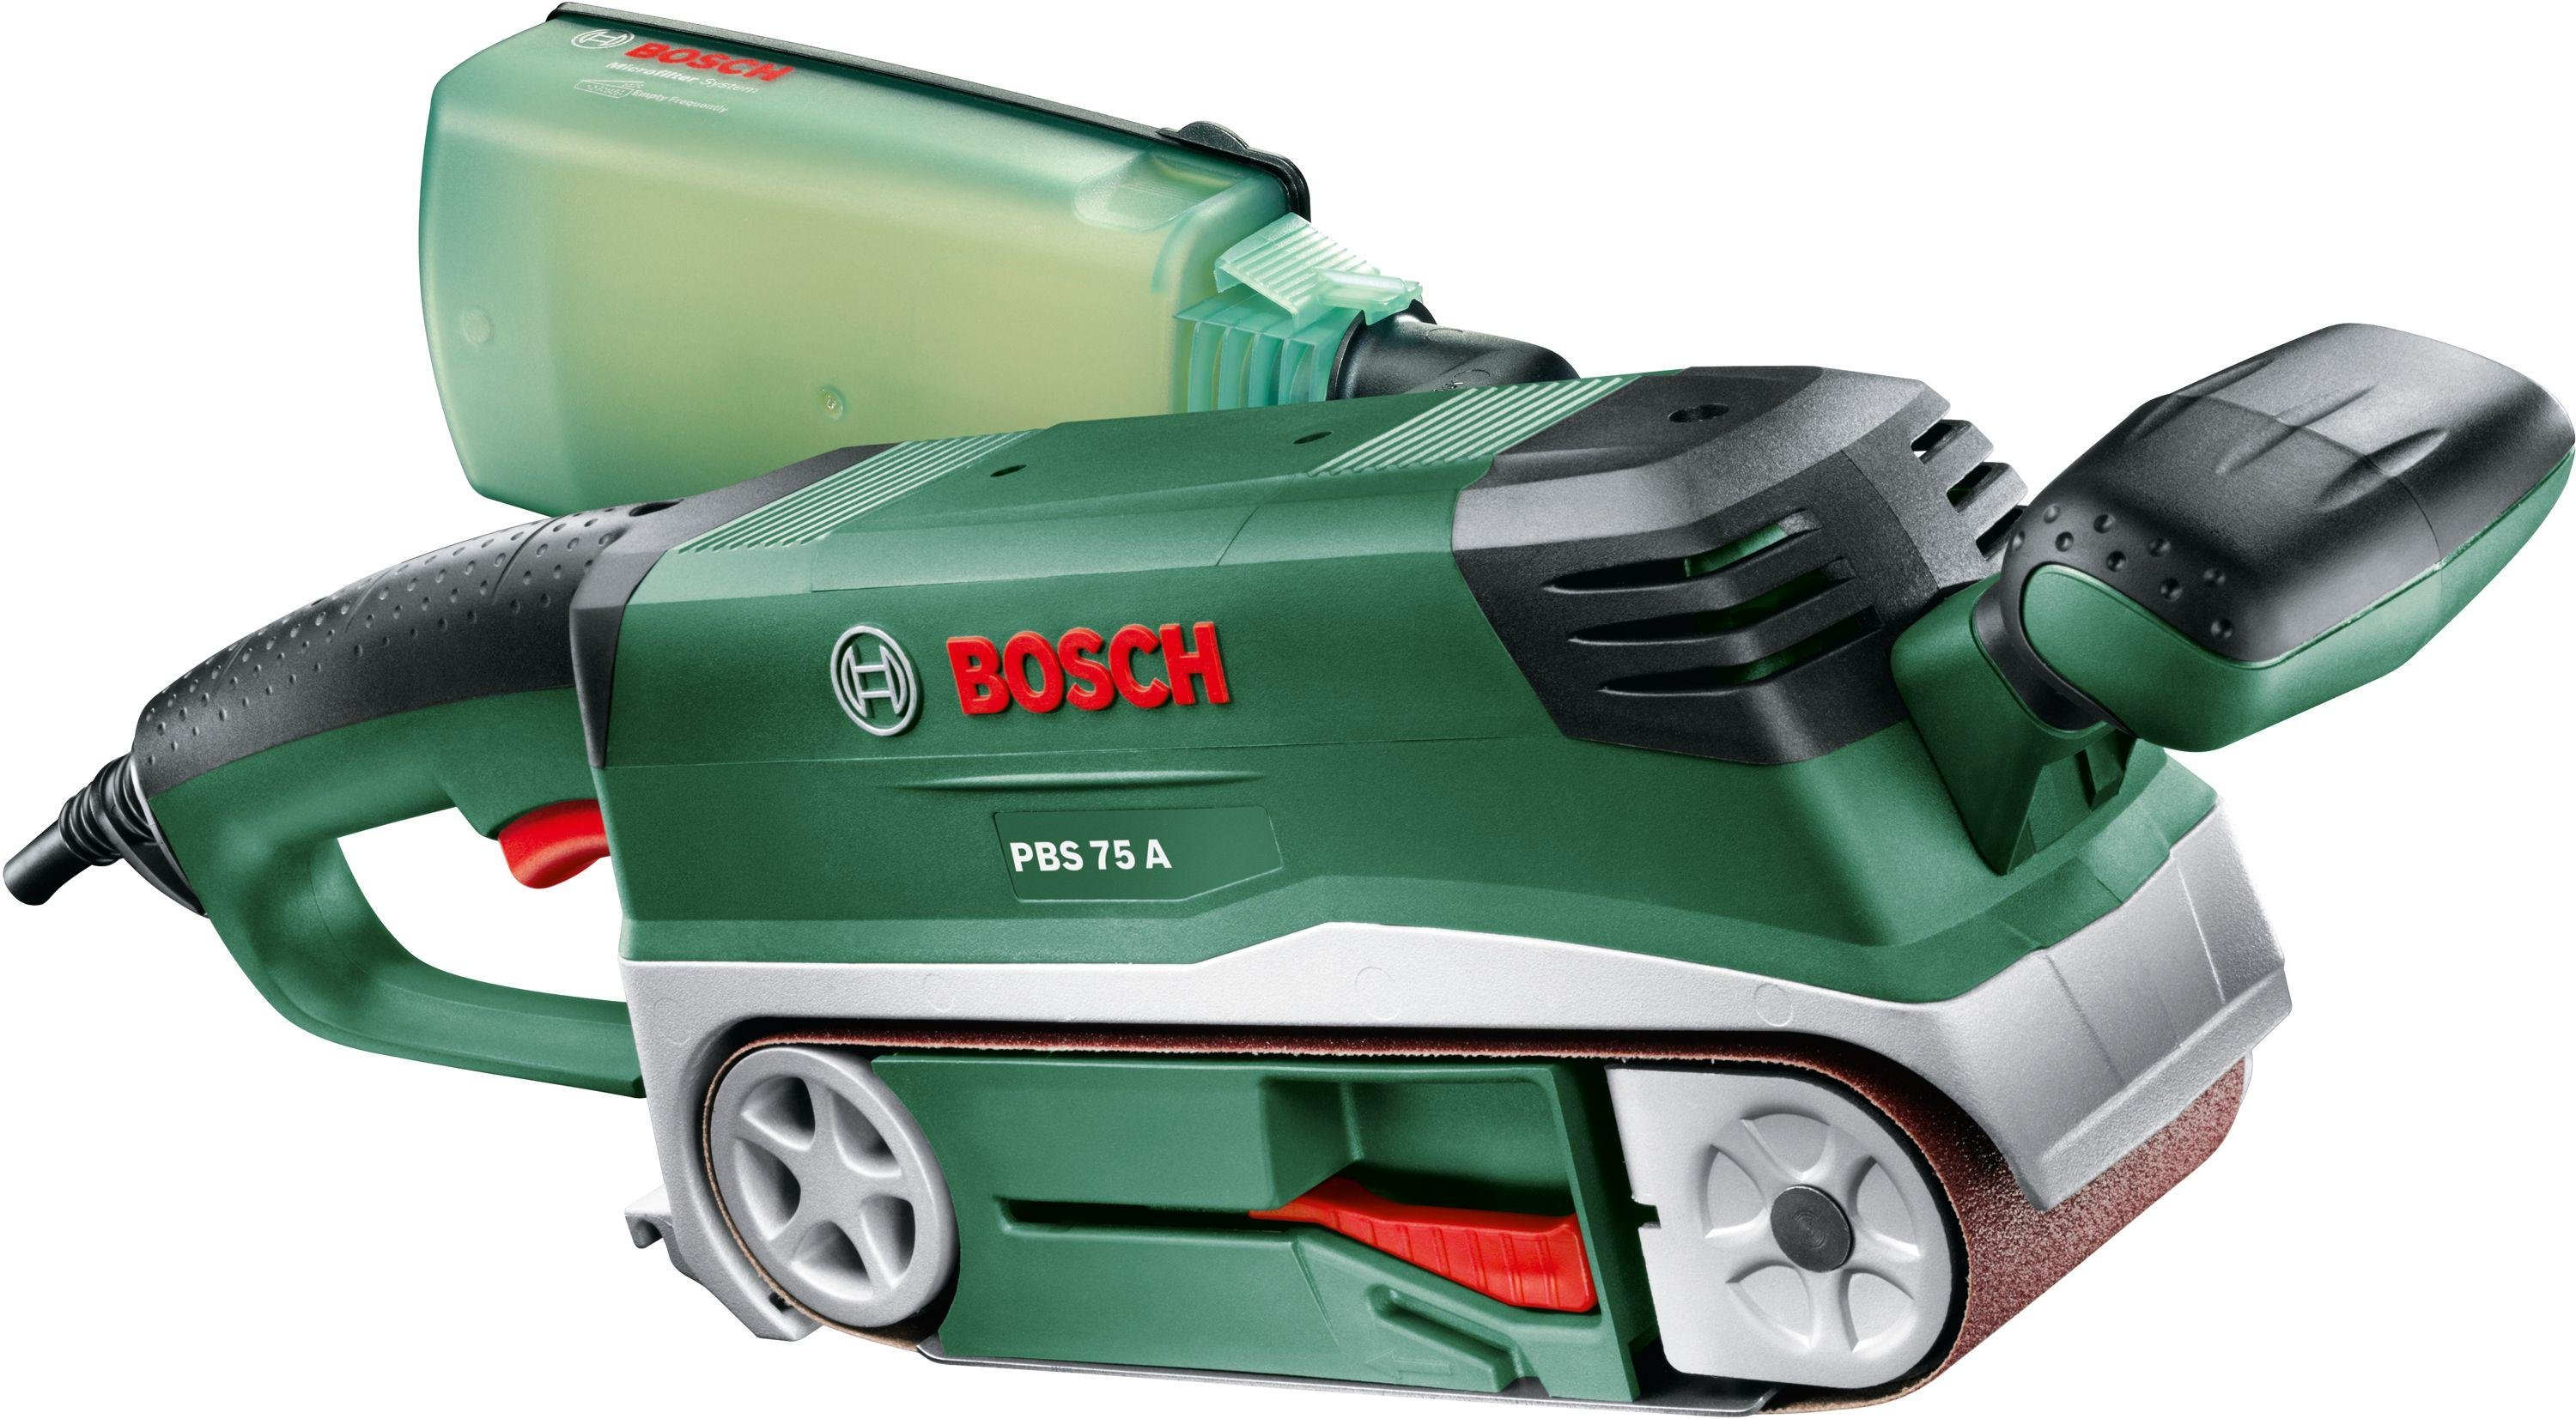 bosch pex 400 ae random orbit sander 350w. Black Bedroom Furniture Sets. Home Design Ideas